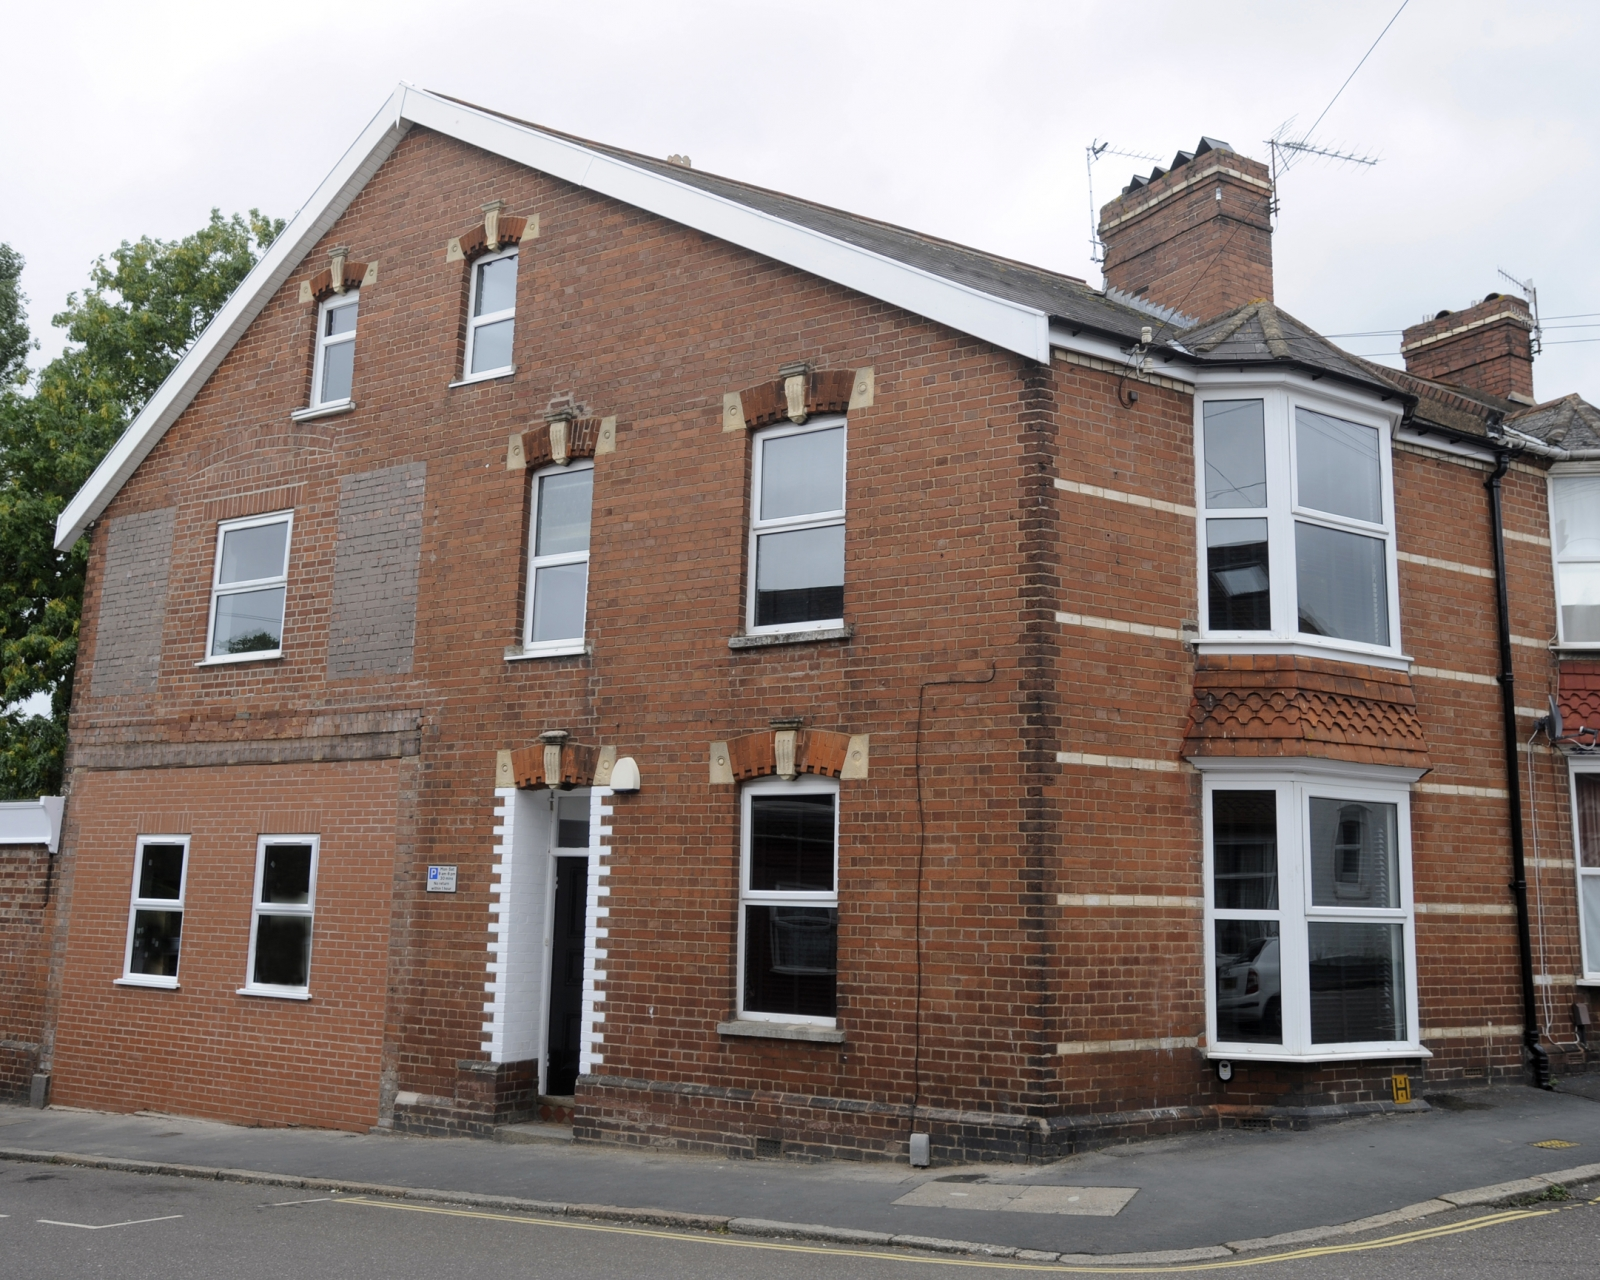 1 Iddesleigh Road, Exeter